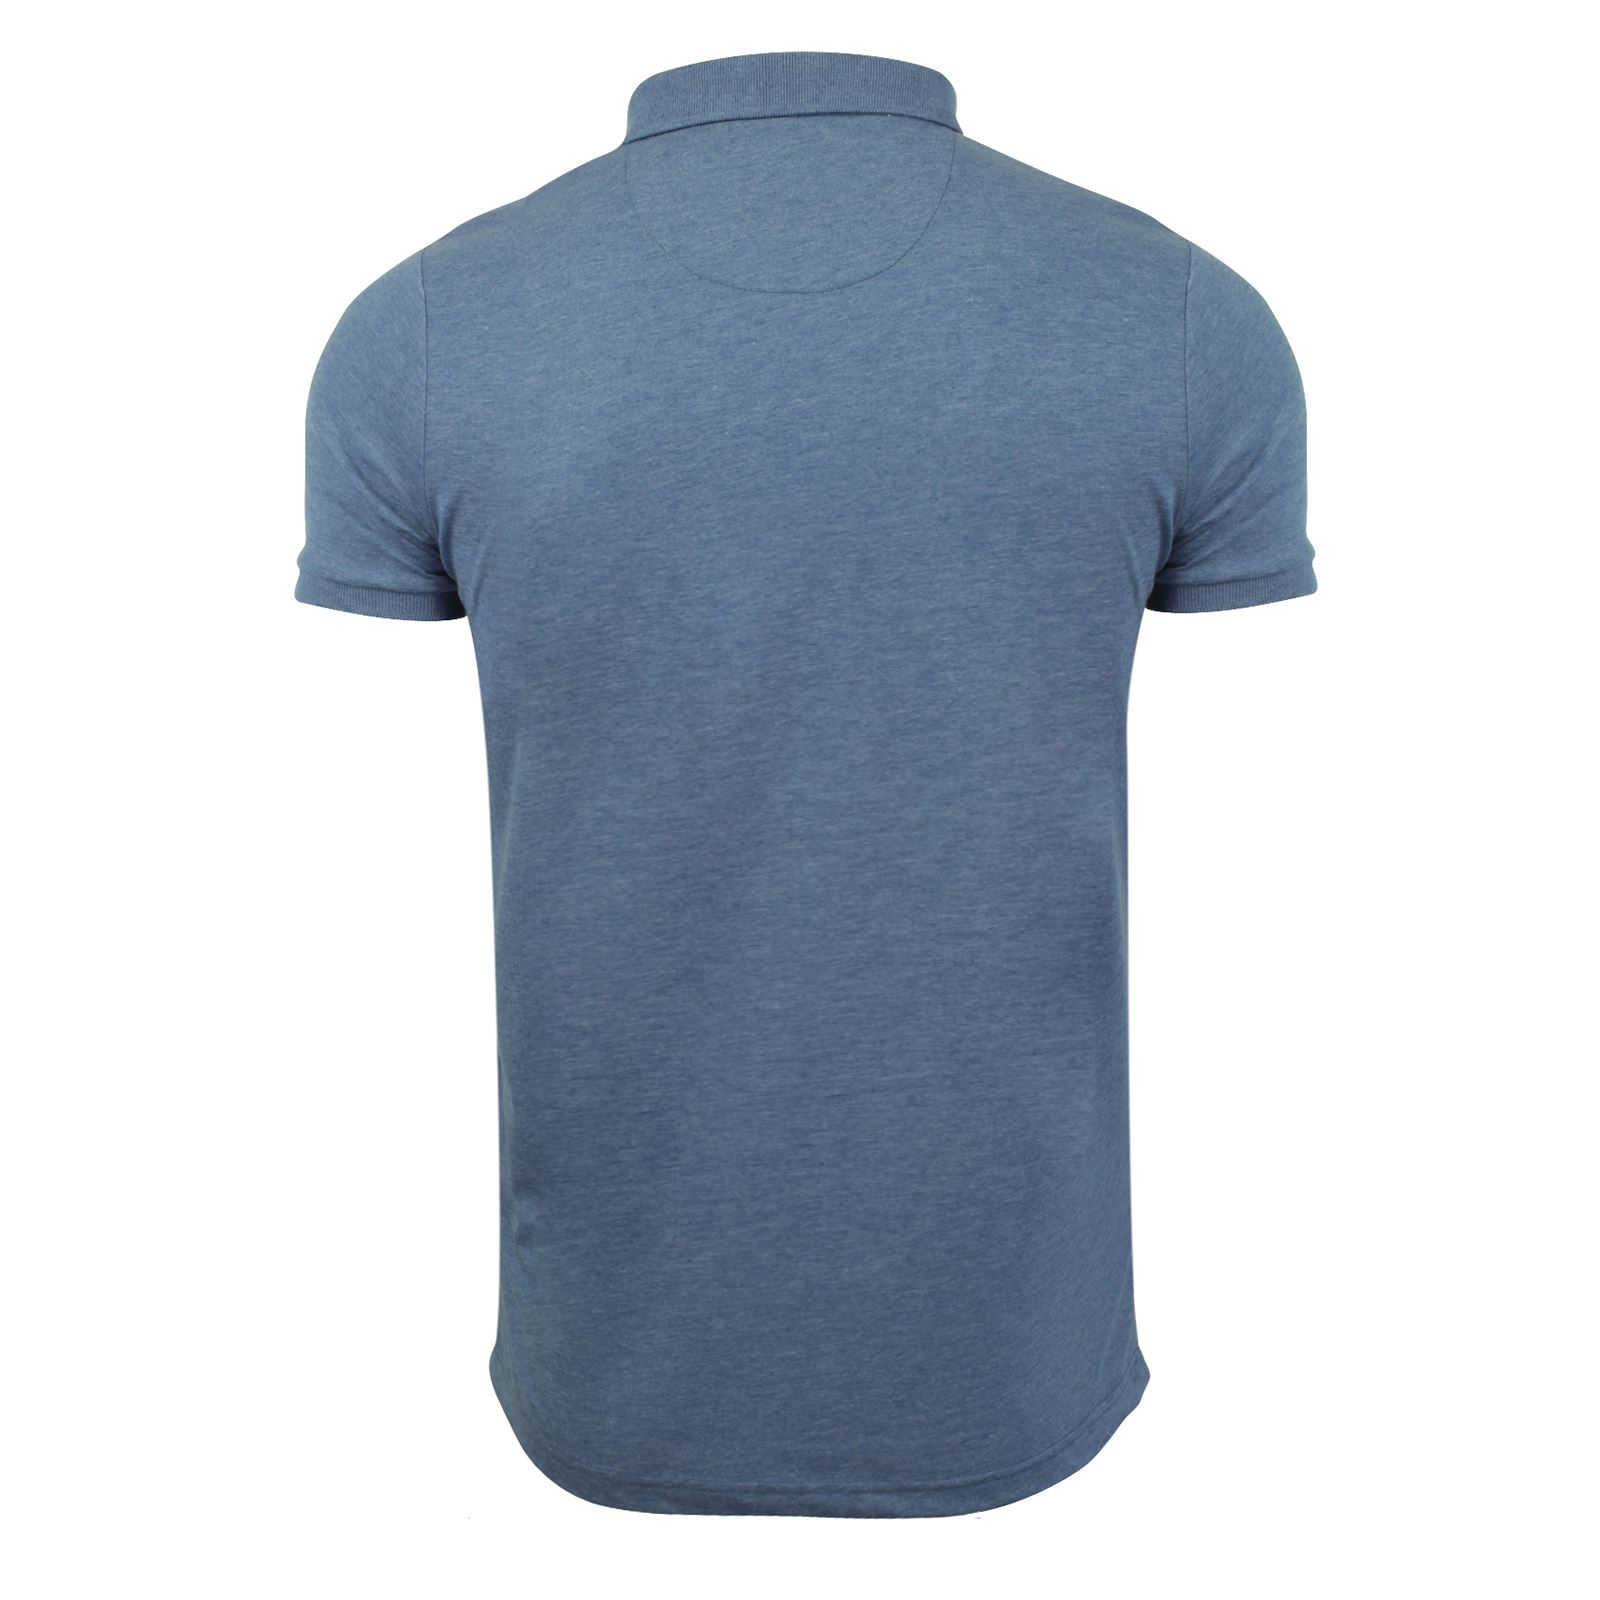 Brave-Soul-Glover-Mens-Polo-T-Shirt-Cotton-Collared-Short-Sleeve-Casual-Top thumbnail 80